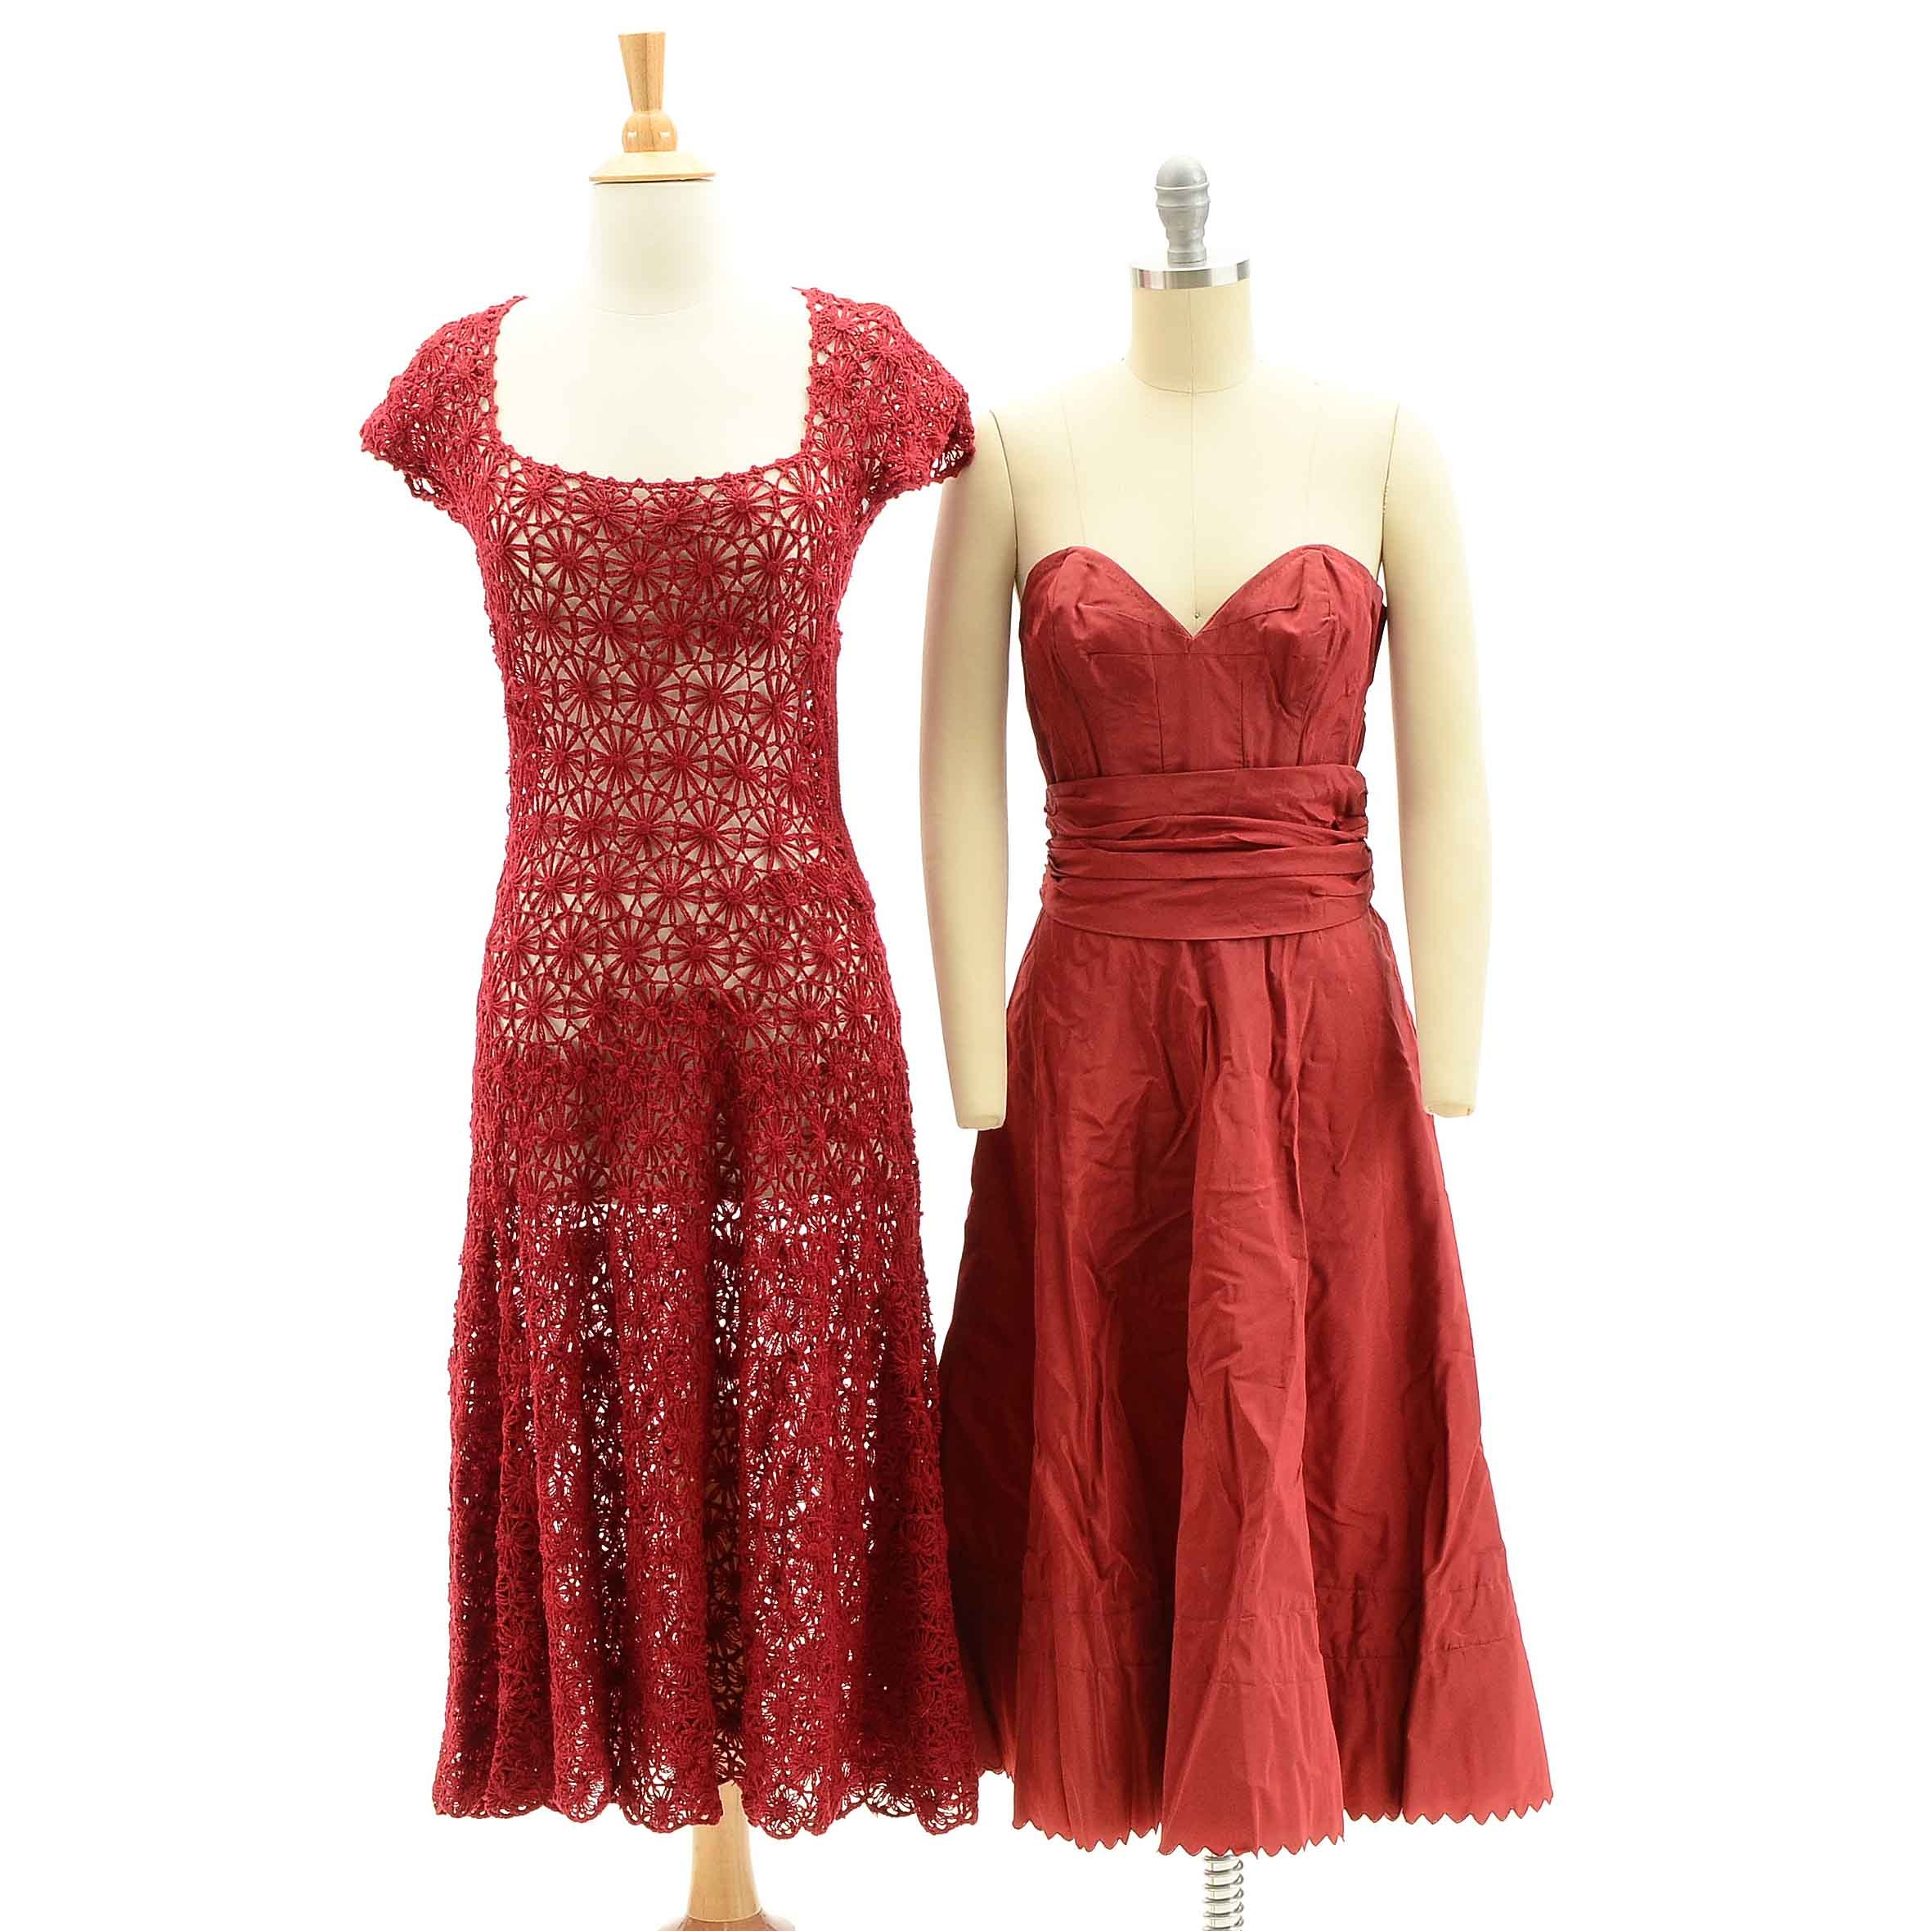 Vintage Red Crochet Dress and Strapless Cocktail Dress